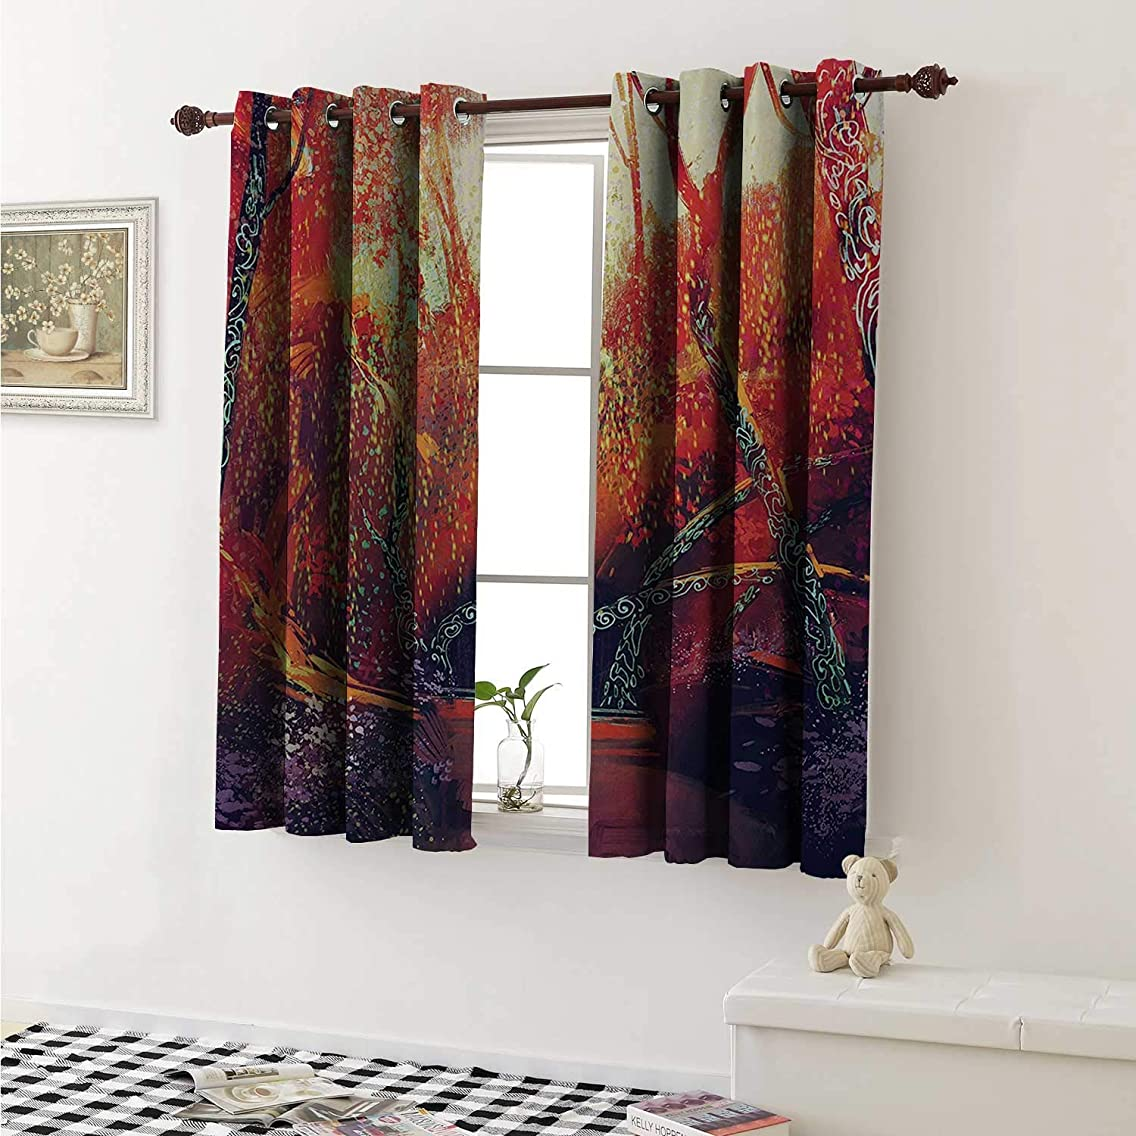 Flyerer Fantasy Customized Curtains Fall Autumn Scenery in Habitat Fairy Tale Woodland Imaginitive Fiction View Curtains for Kitchen Windows W63 x L45 Inch Orange Purple